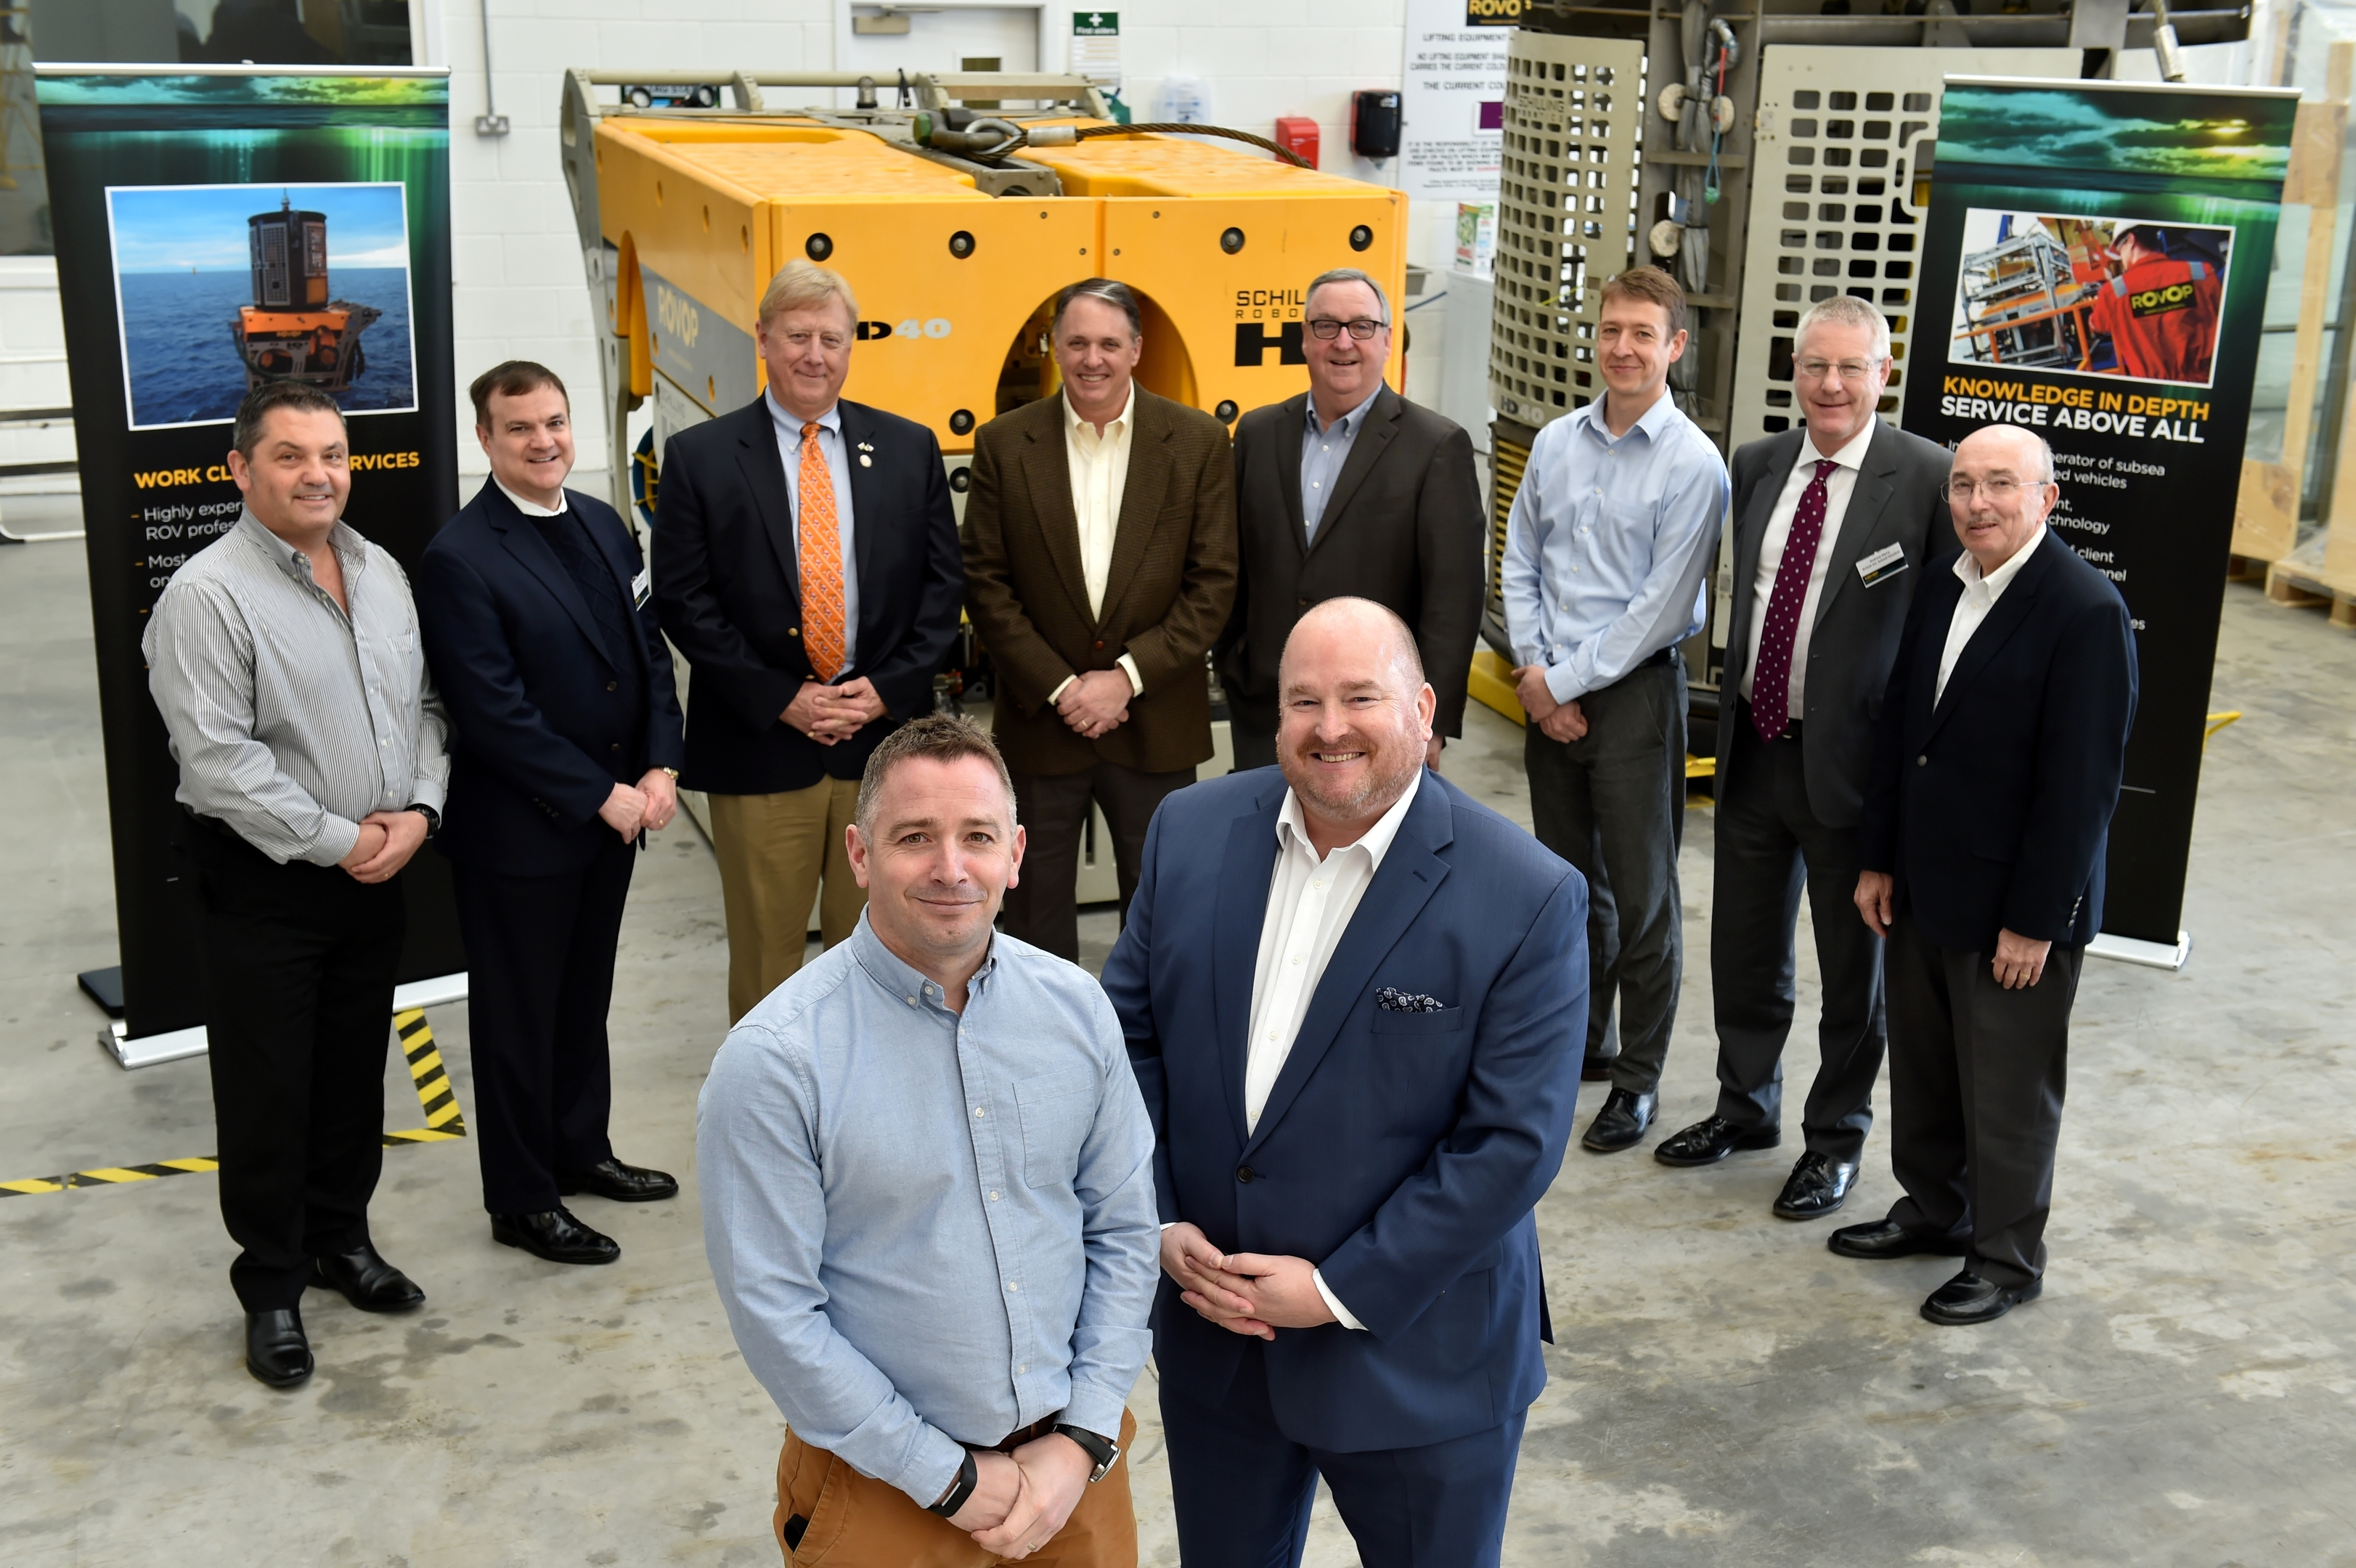 Business - Aberdeen-Houston Gateway delegates visited Rovop, who will make expansion announcement. Picture of (L-R) Euan Tait (Commercial Director, ROVOP), Jeffrey Blair (Director, Europe, Middle East and Africa - Greater Houston Partnership) and Houston delegates.